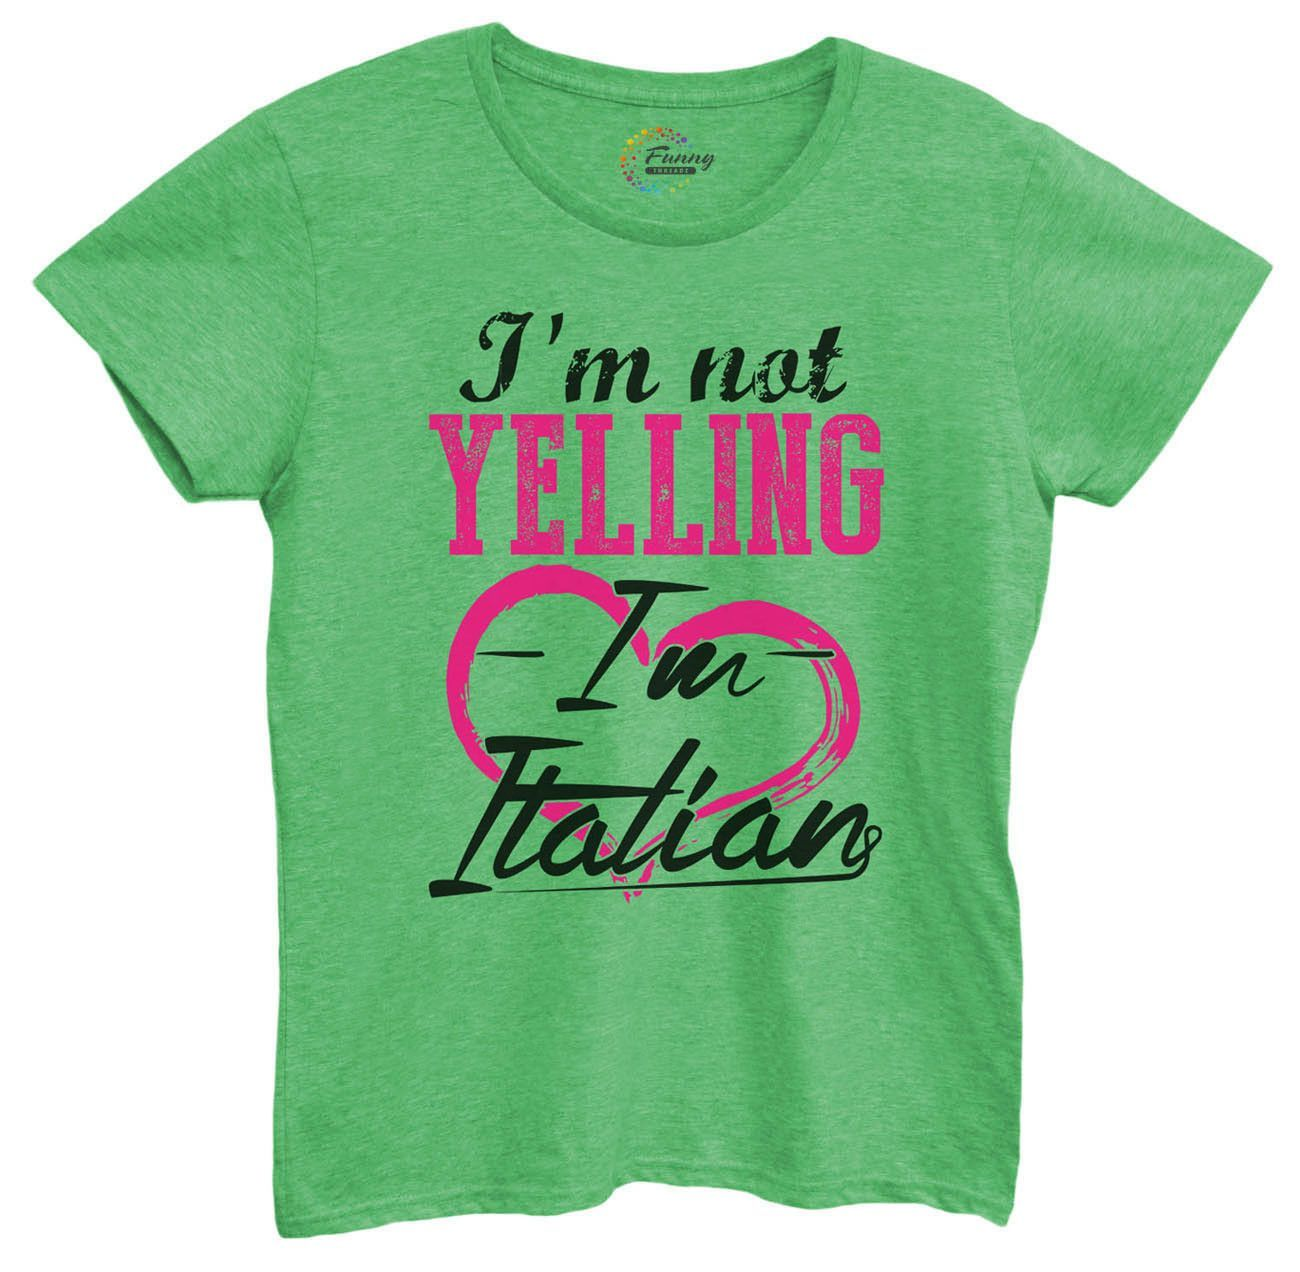 466955fab I'm Not Yelling I'm Italian - Womens funny t-shirt. Enjoy the largest  selection of Tshirts and tanks on the way. Offering 24-48 hour shipping on  all shirts.